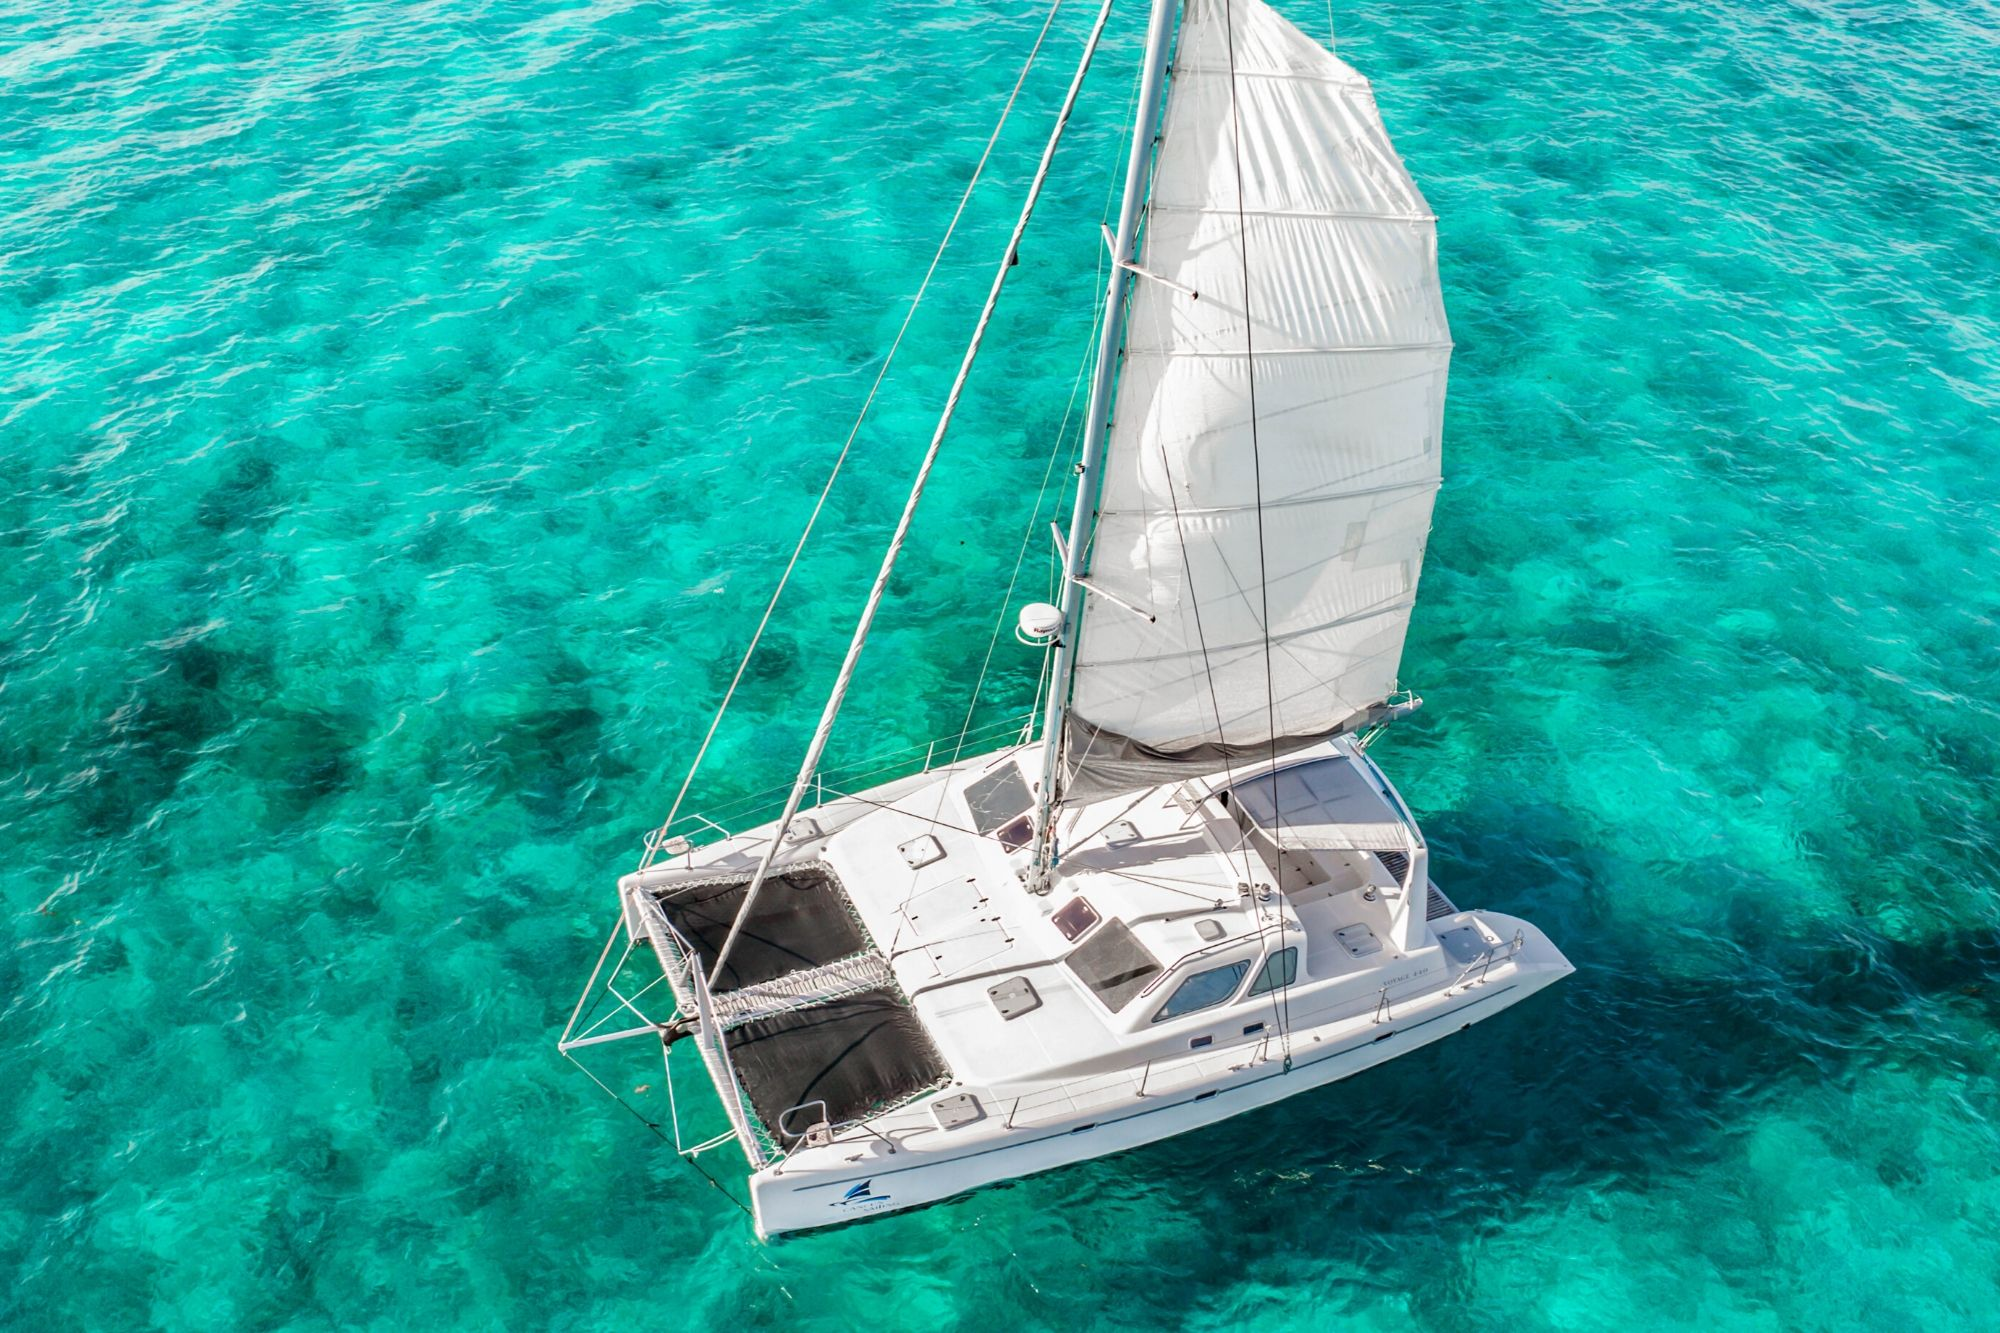 4 - Paradise explorer - Private Isla Mujeres catamaran tour - Cancun Sailing